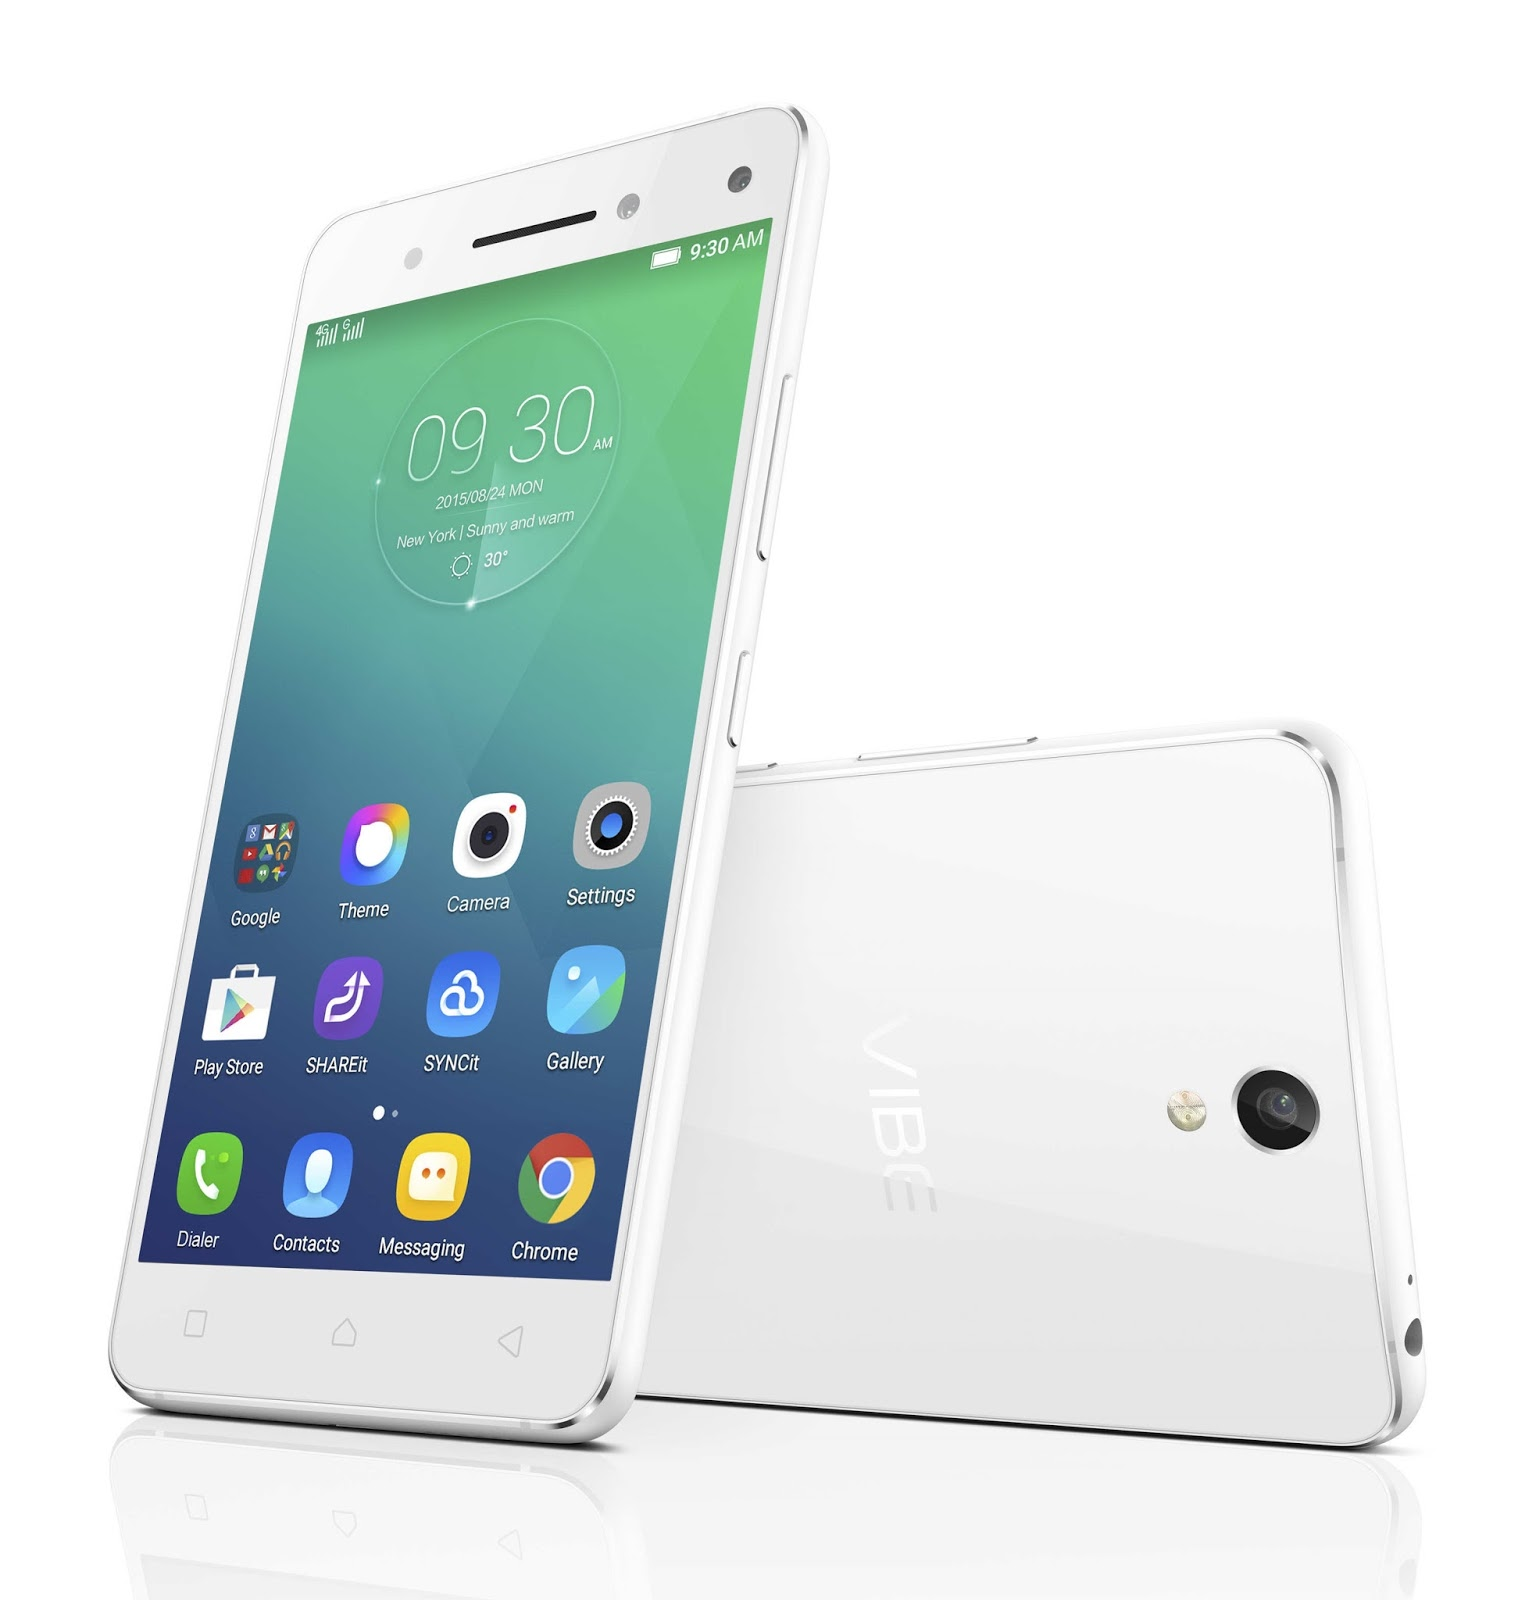 Lenovo VIBE S1: Specs, Price and Availability